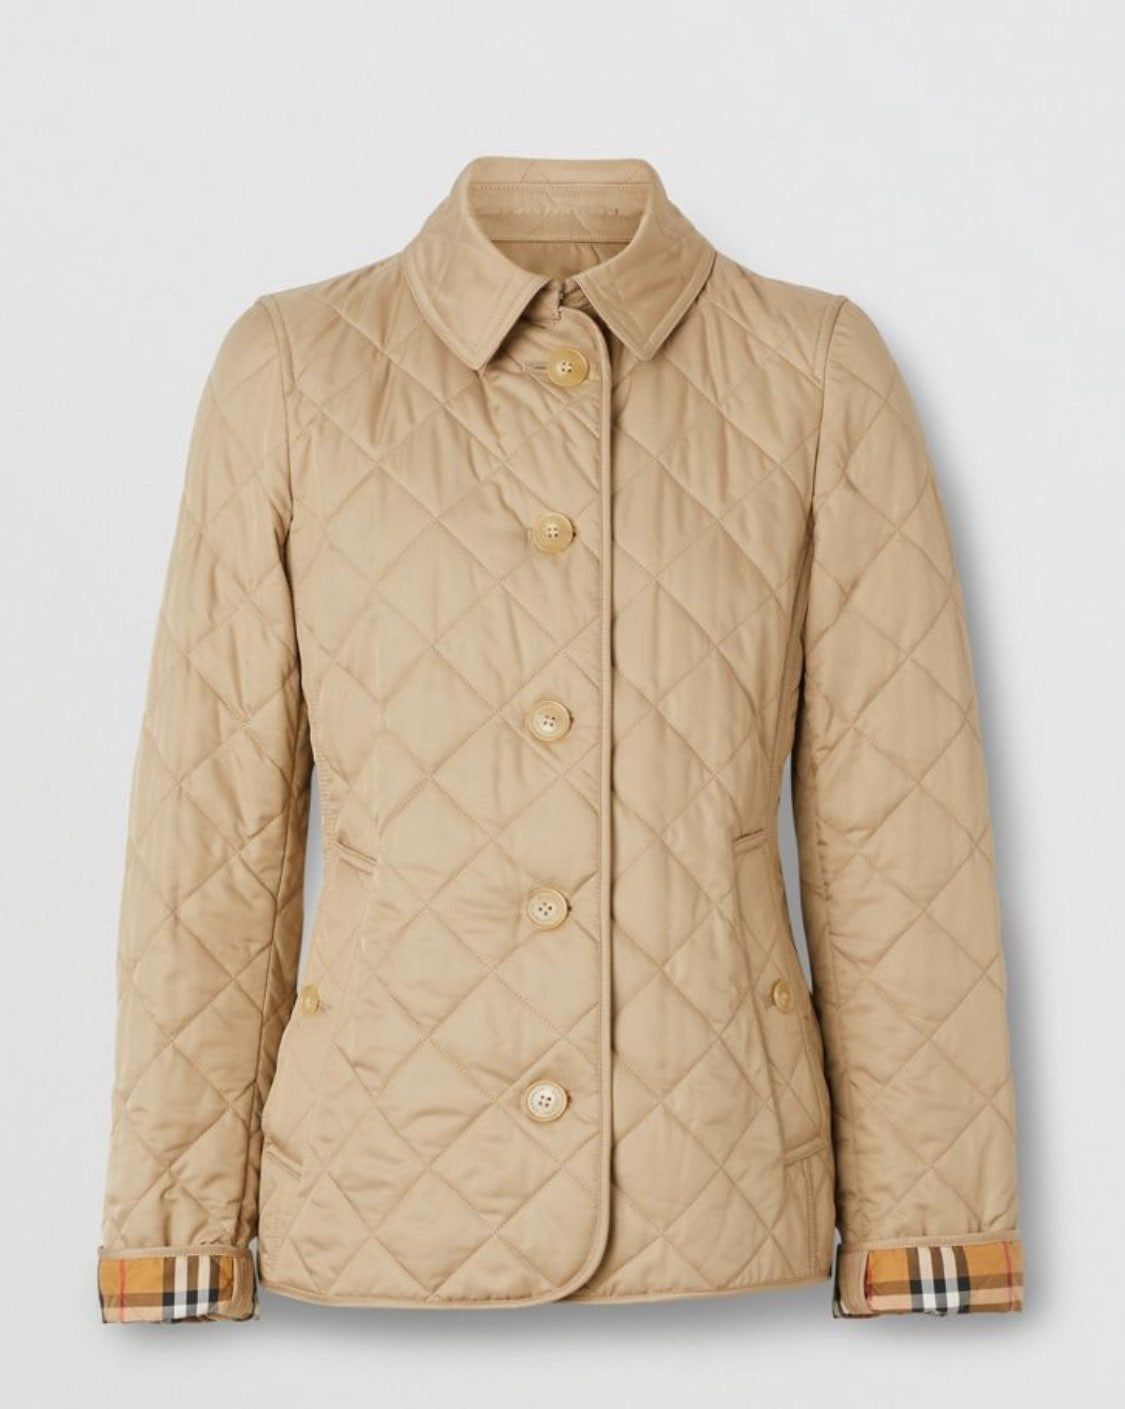 New No Tag Never Wear Great Deals Firm Price Original 590 Quilted Jacket Jackets Burberry Jacket